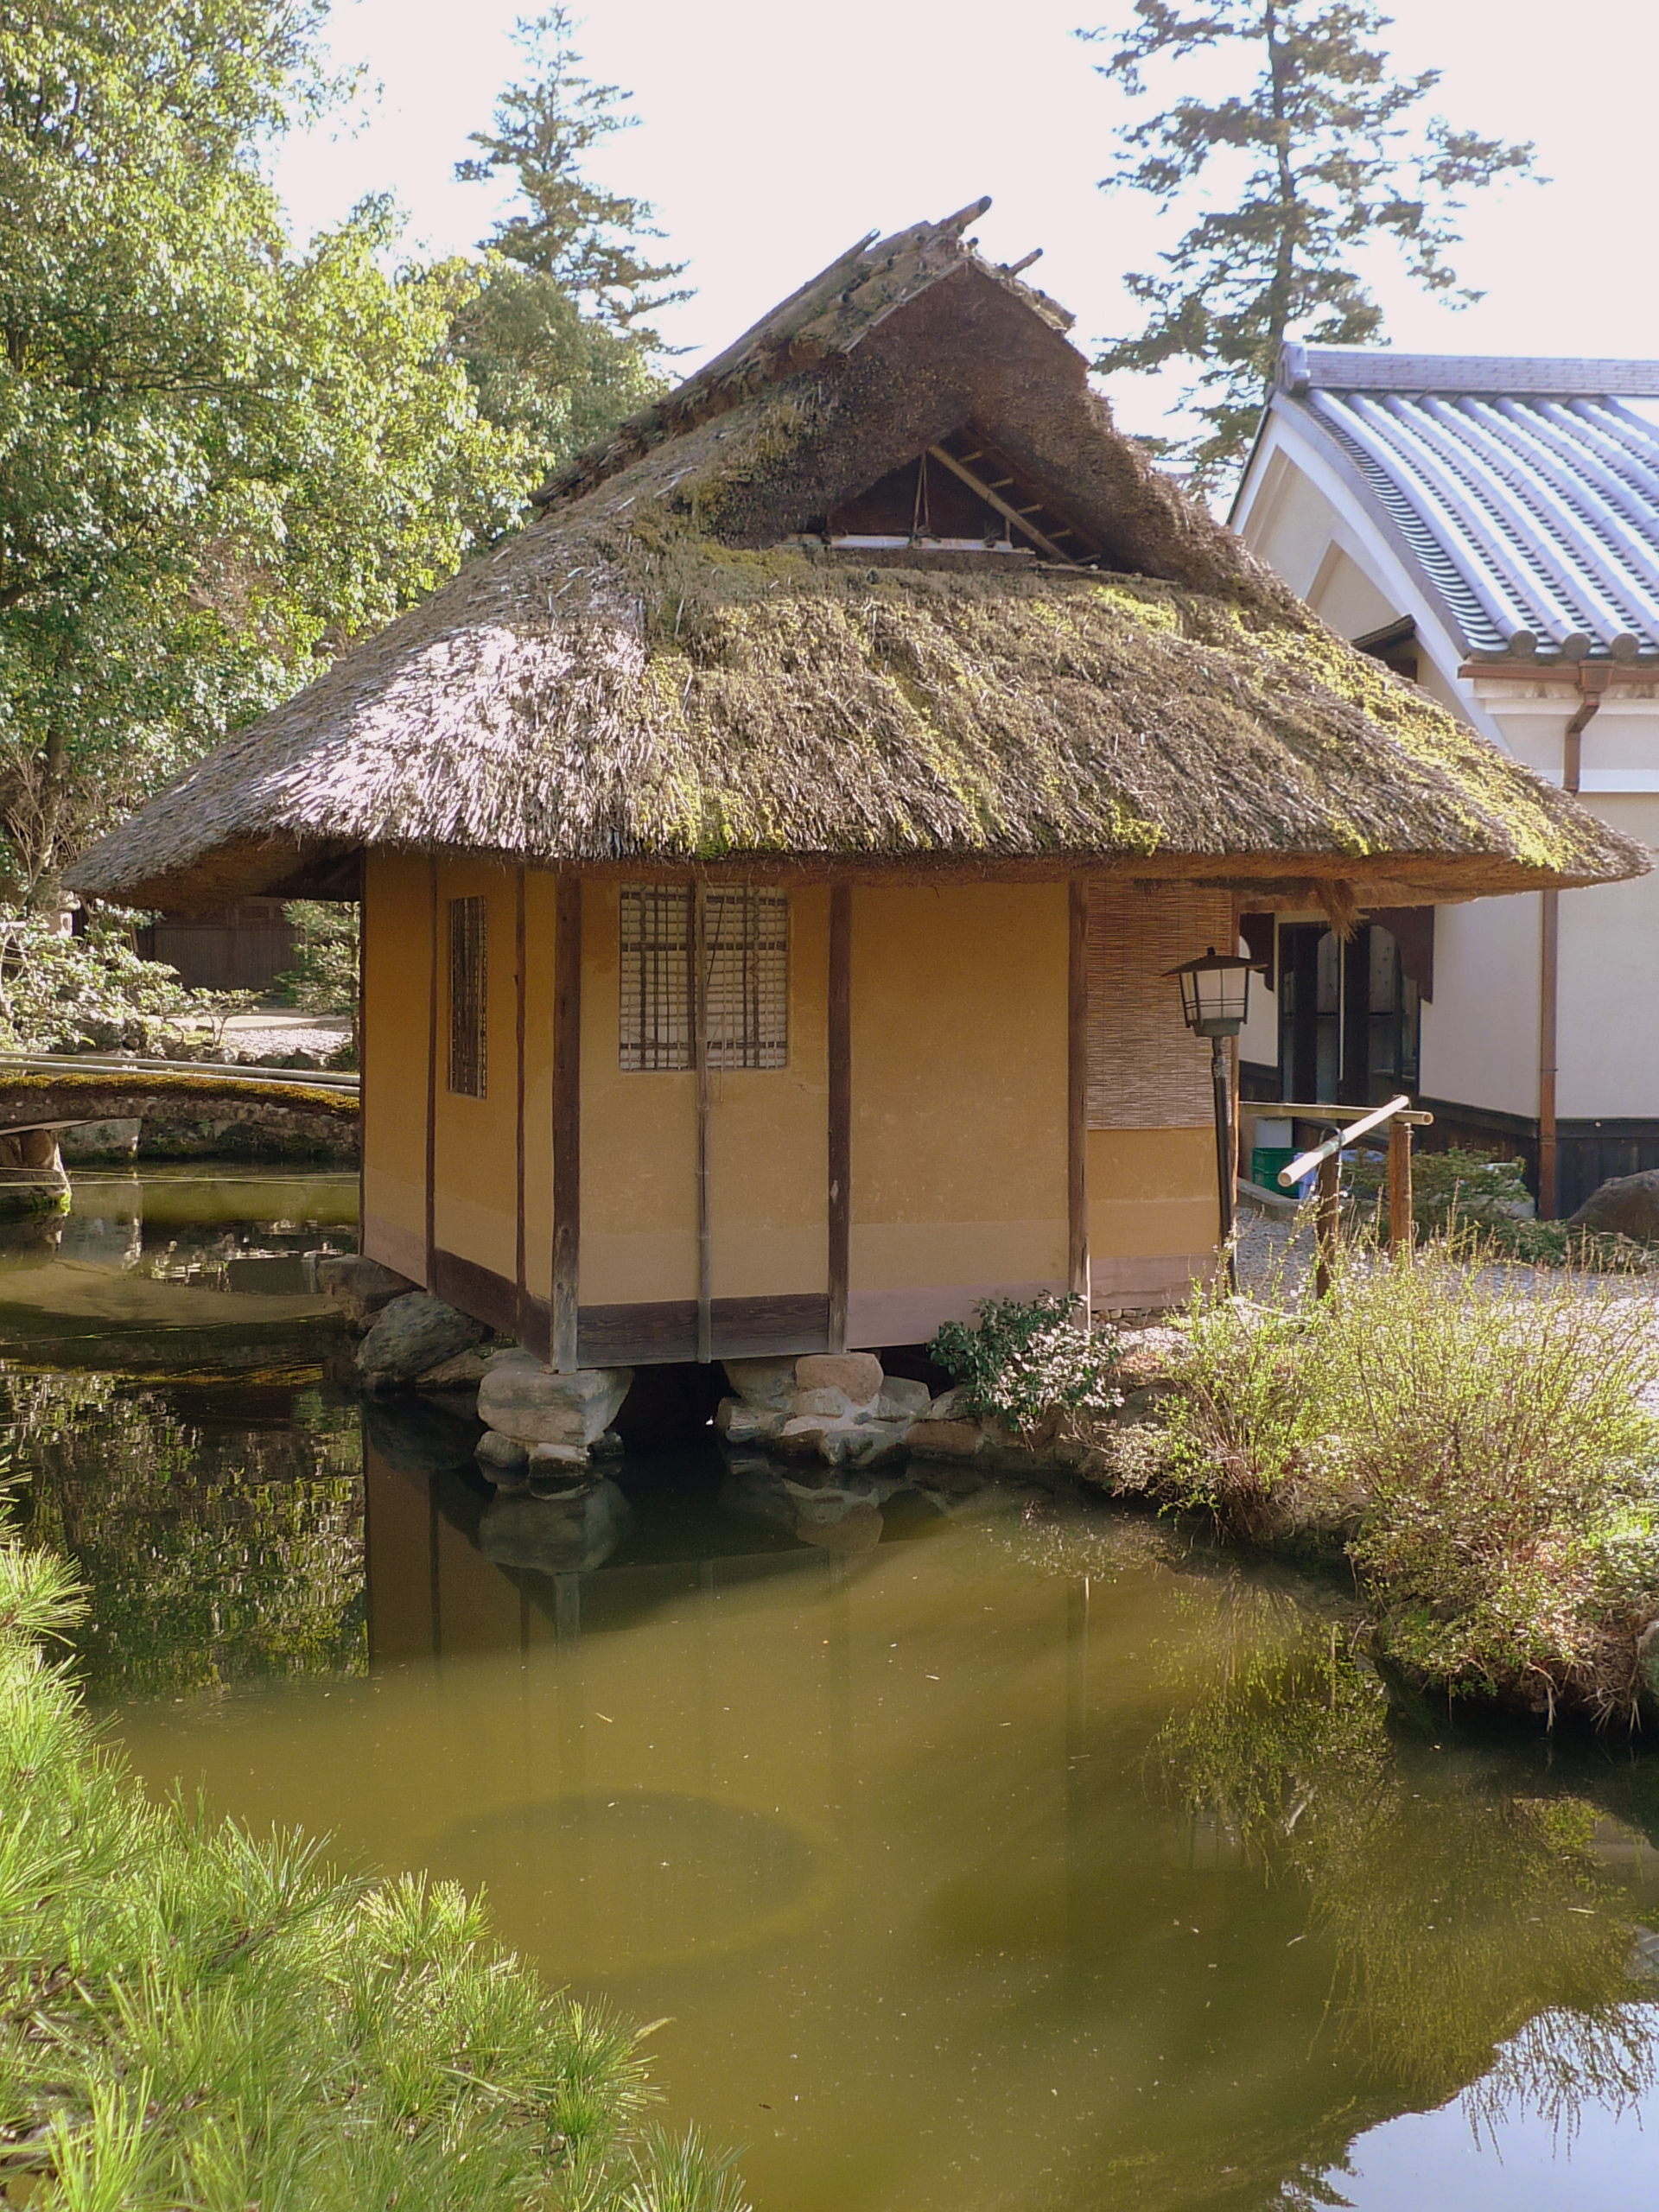 Tea house built over pond